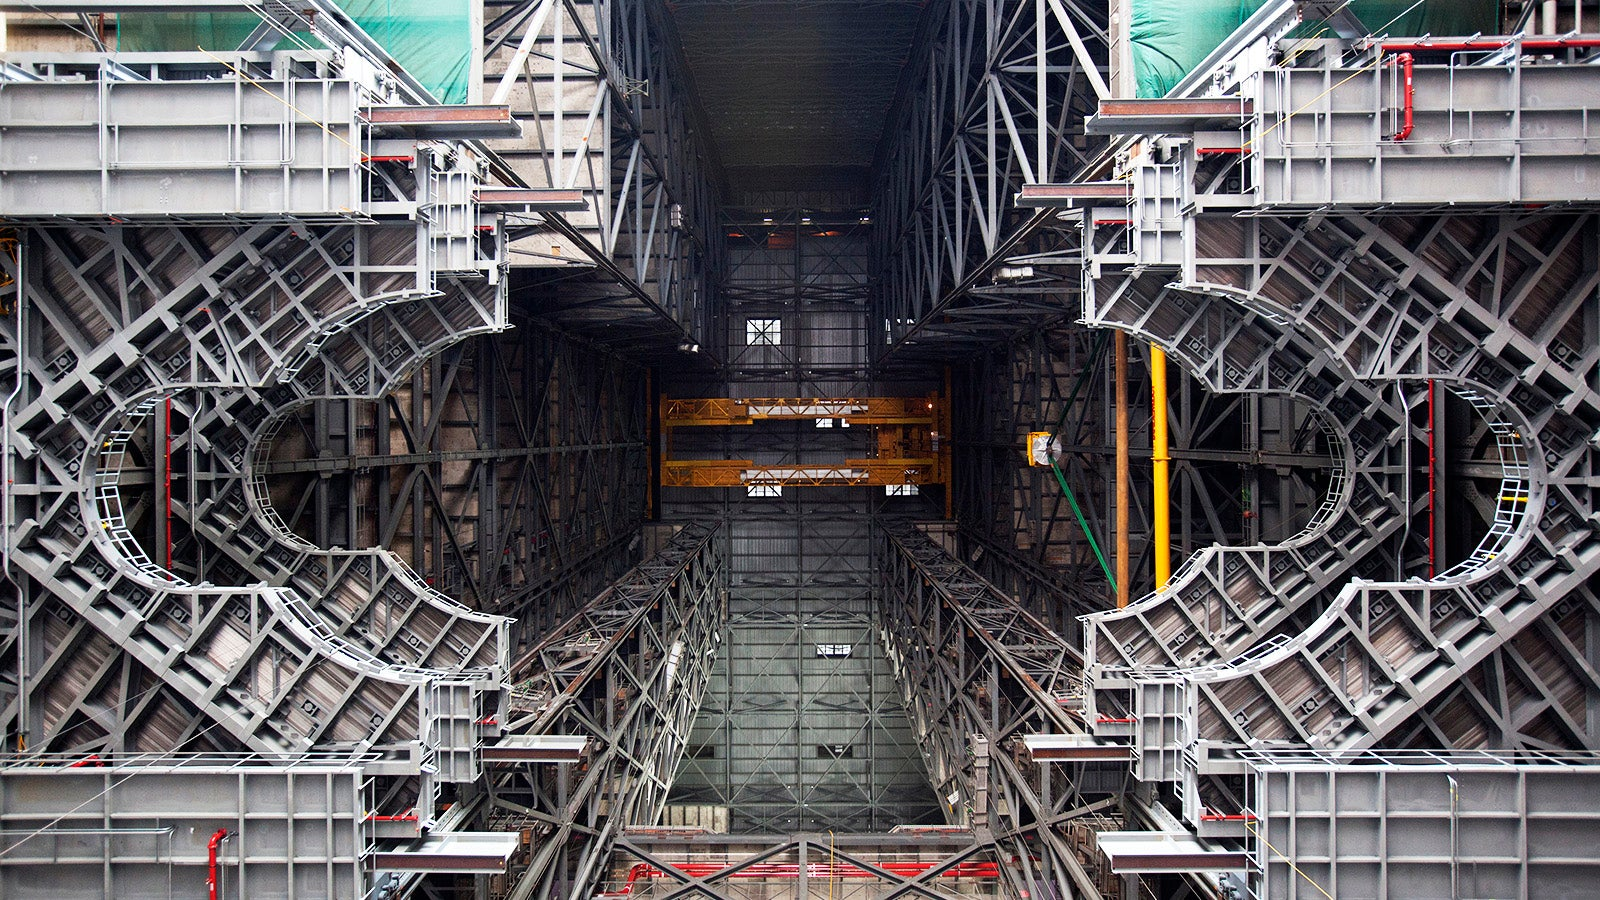 NASA's New Garage Looks Like The Inside Of The Death Star